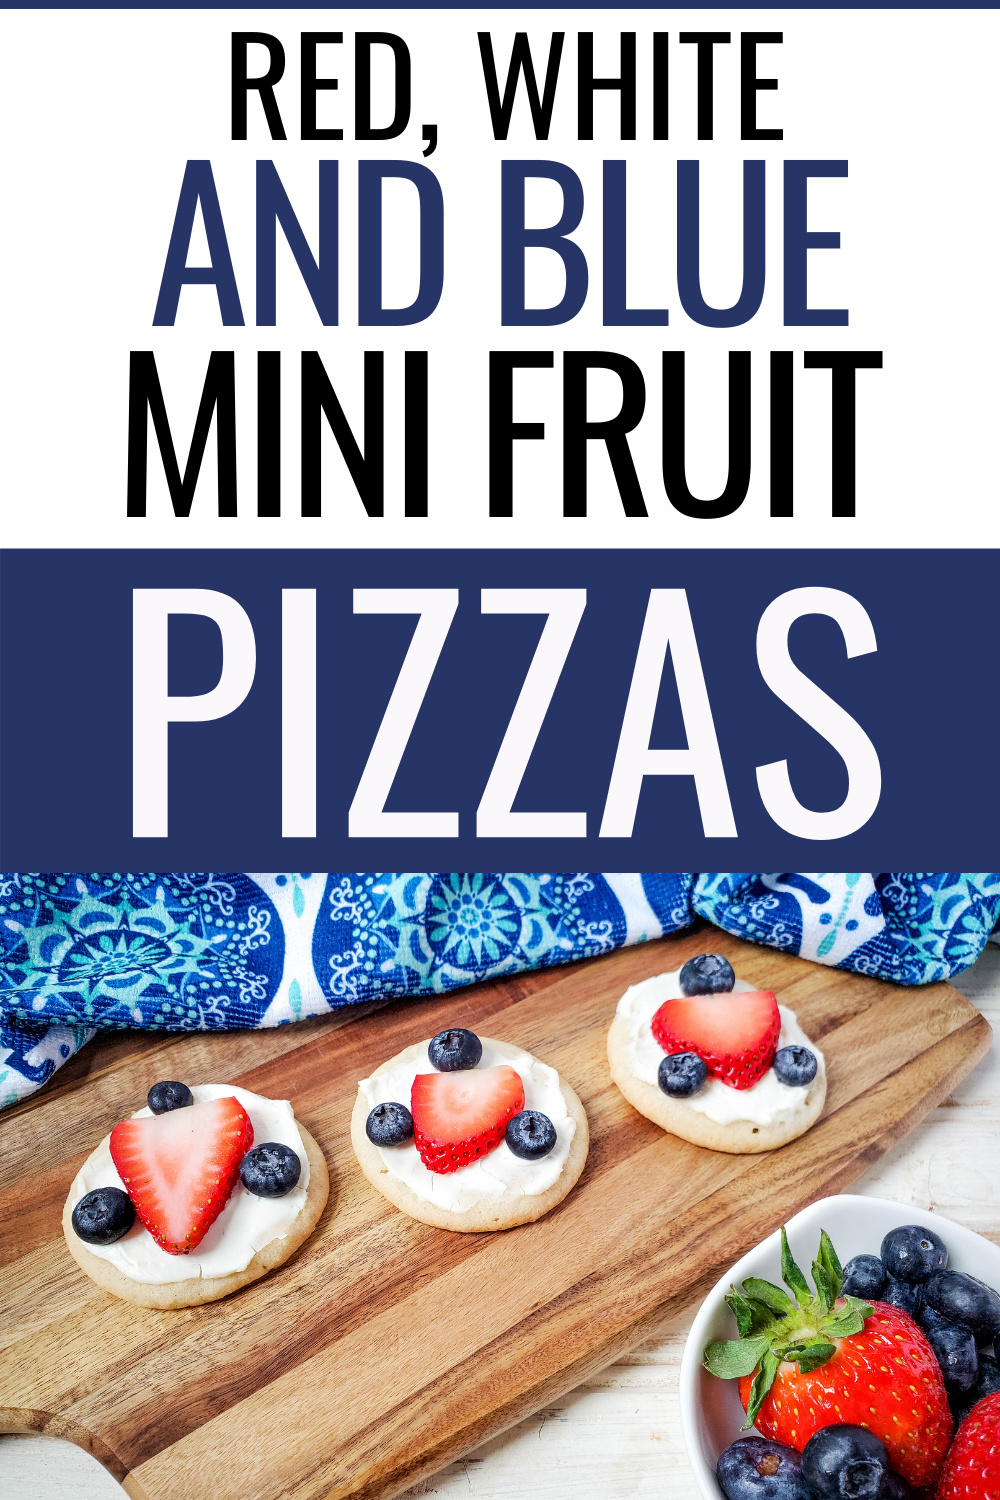 Graphic for Red, White and Blue Mini Fruit Pizzas